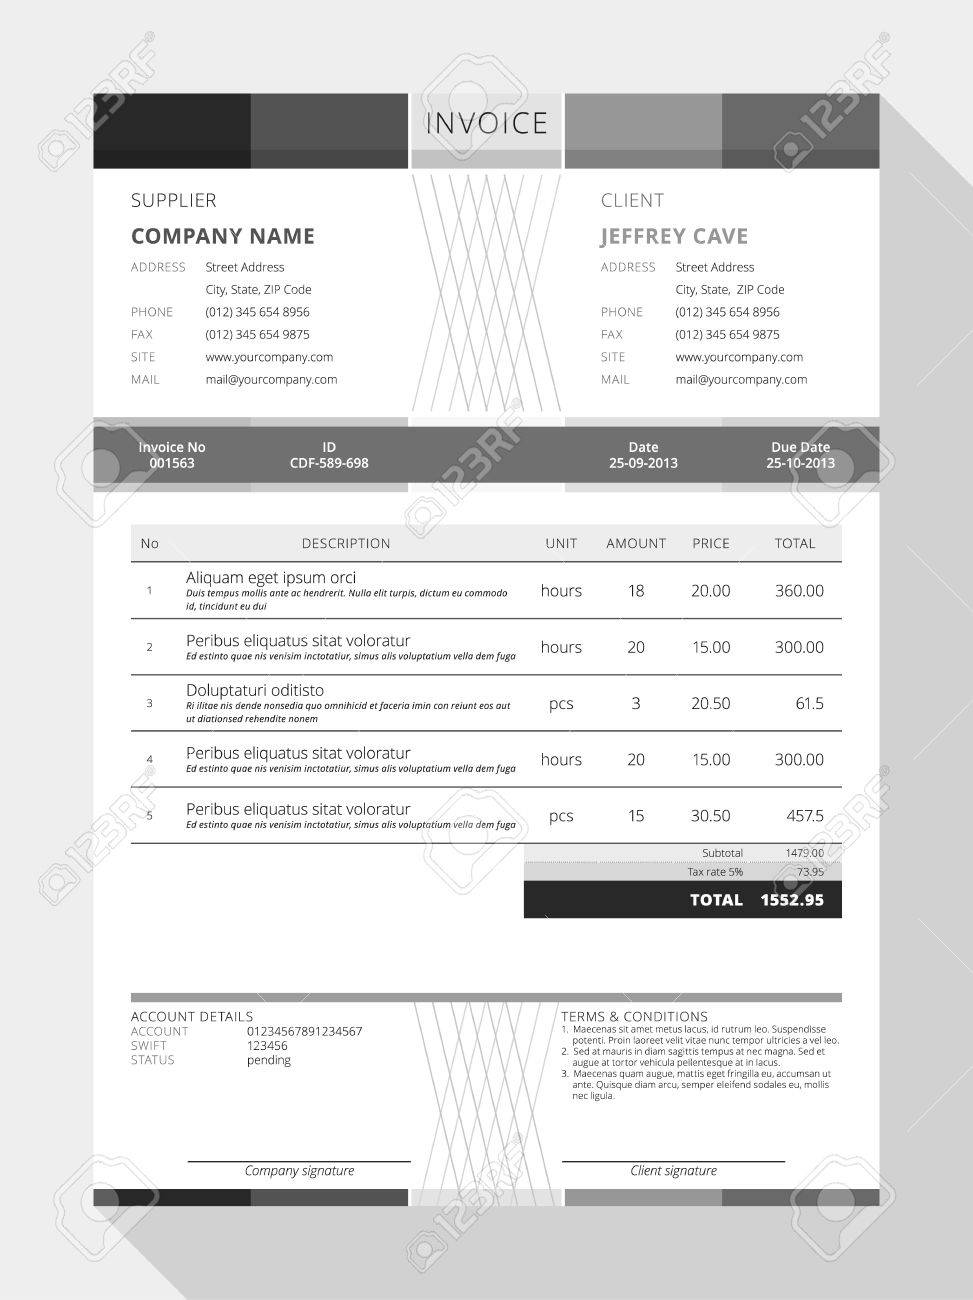 Hucareus  Nice Design An Invoice  Professional Graphic Design Invoice  With Magnificent Vector Customizable Invoice Form Template Design Vector   Design An Invoice With Easy On The Eye Commercial Invoice Template Excel Also How To Write A Invoice In Addition Toll By Plate Invoice Florida And Factory Invoice Vs Msrp As Well As Invoice Automation Additionally Fedex Pay Invoice From Happytomco With Hucareus  Magnificent Design An Invoice  Professional Graphic Design Invoice  With Easy On The Eye Vector Customizable Invoice Form Template Design Vector   Design An Invoice And Nice Commercial Invoice Template Excel Also How To Write A Invoice In Addition Toll By Plate Invoice Florida From Happytomco